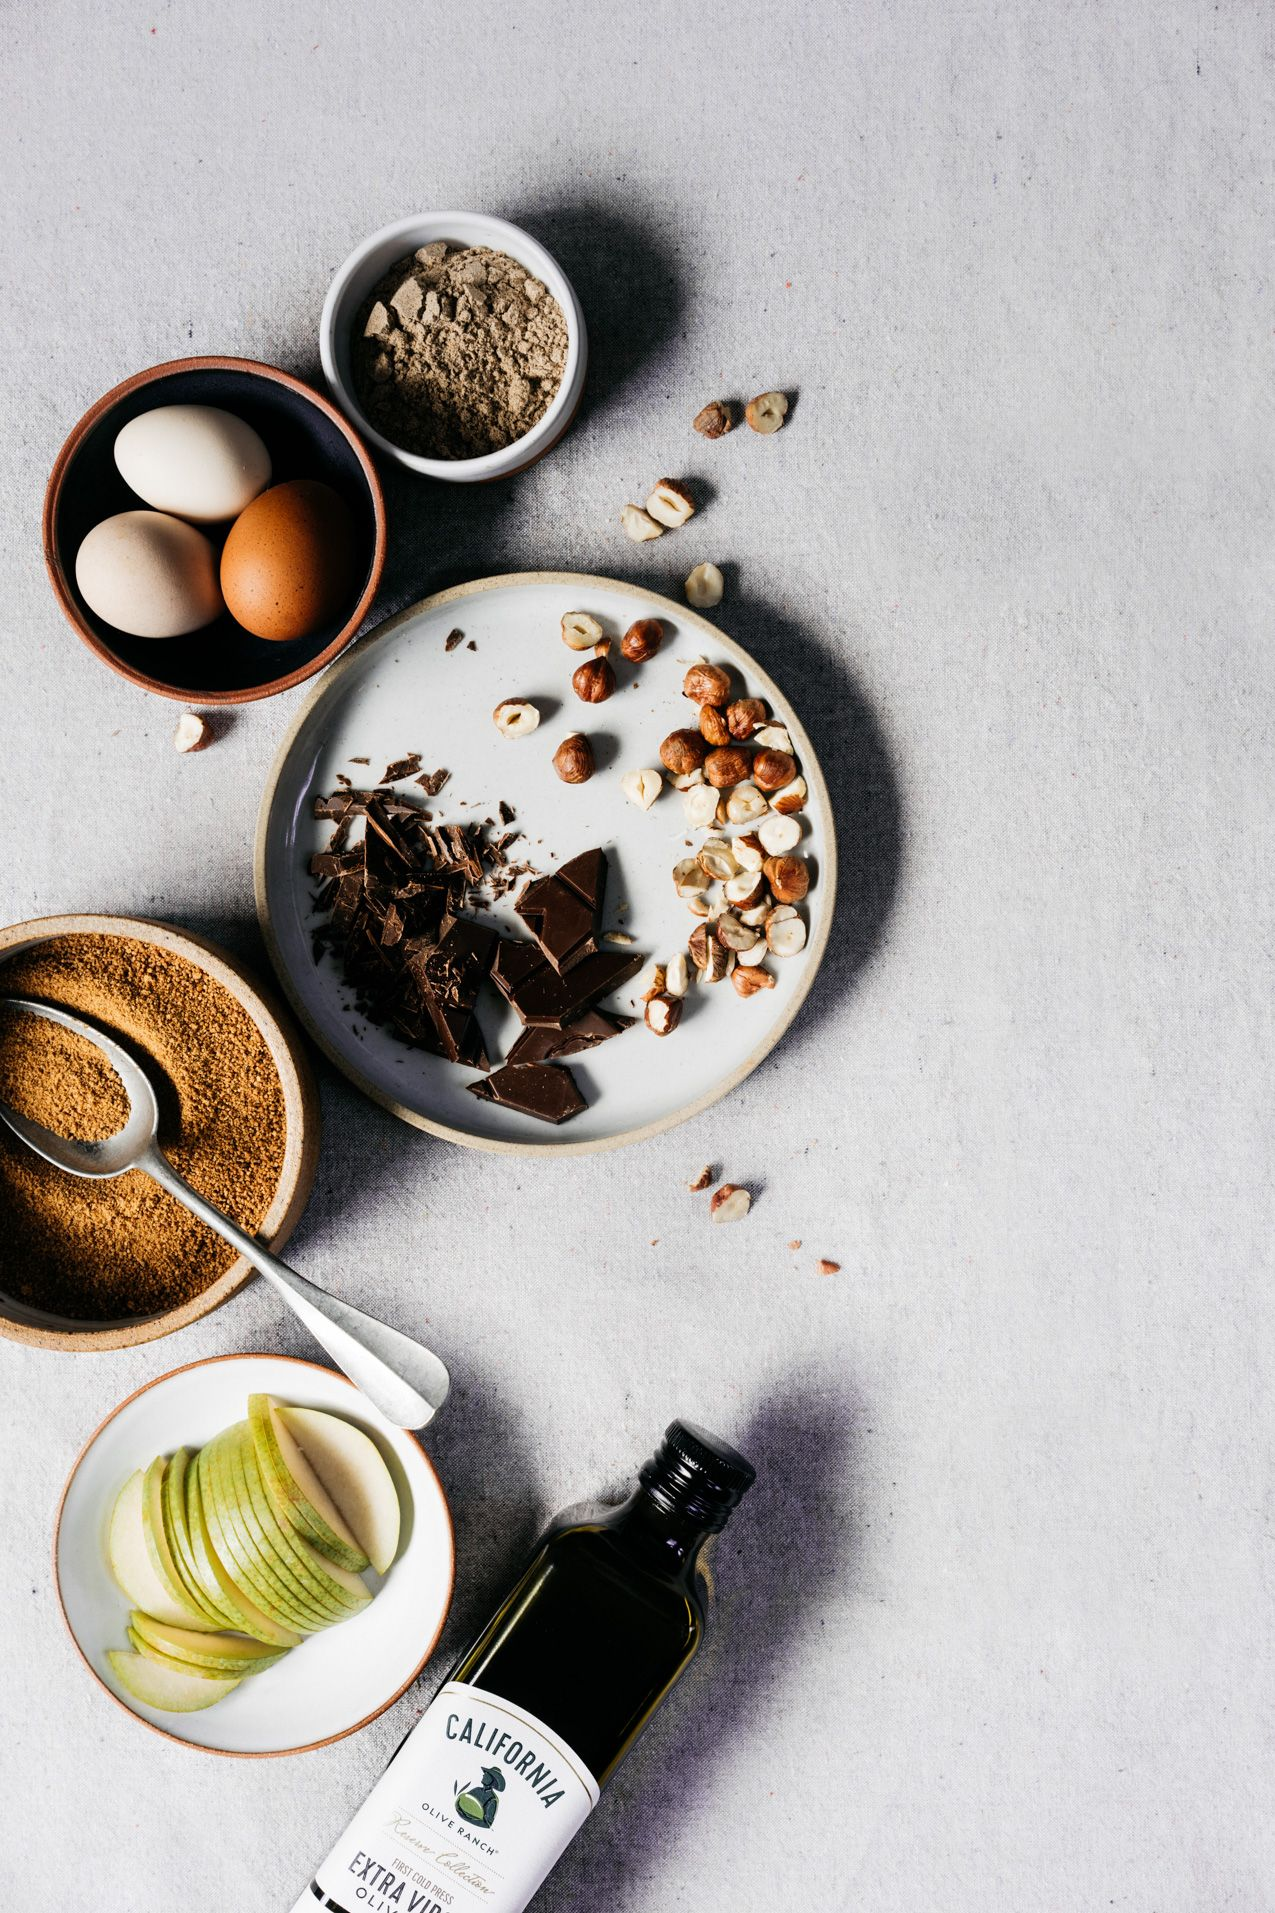 Chocolate Olive Oil Torte with Cardamom, Pears and Hazelnuts | TENDING the TABLE